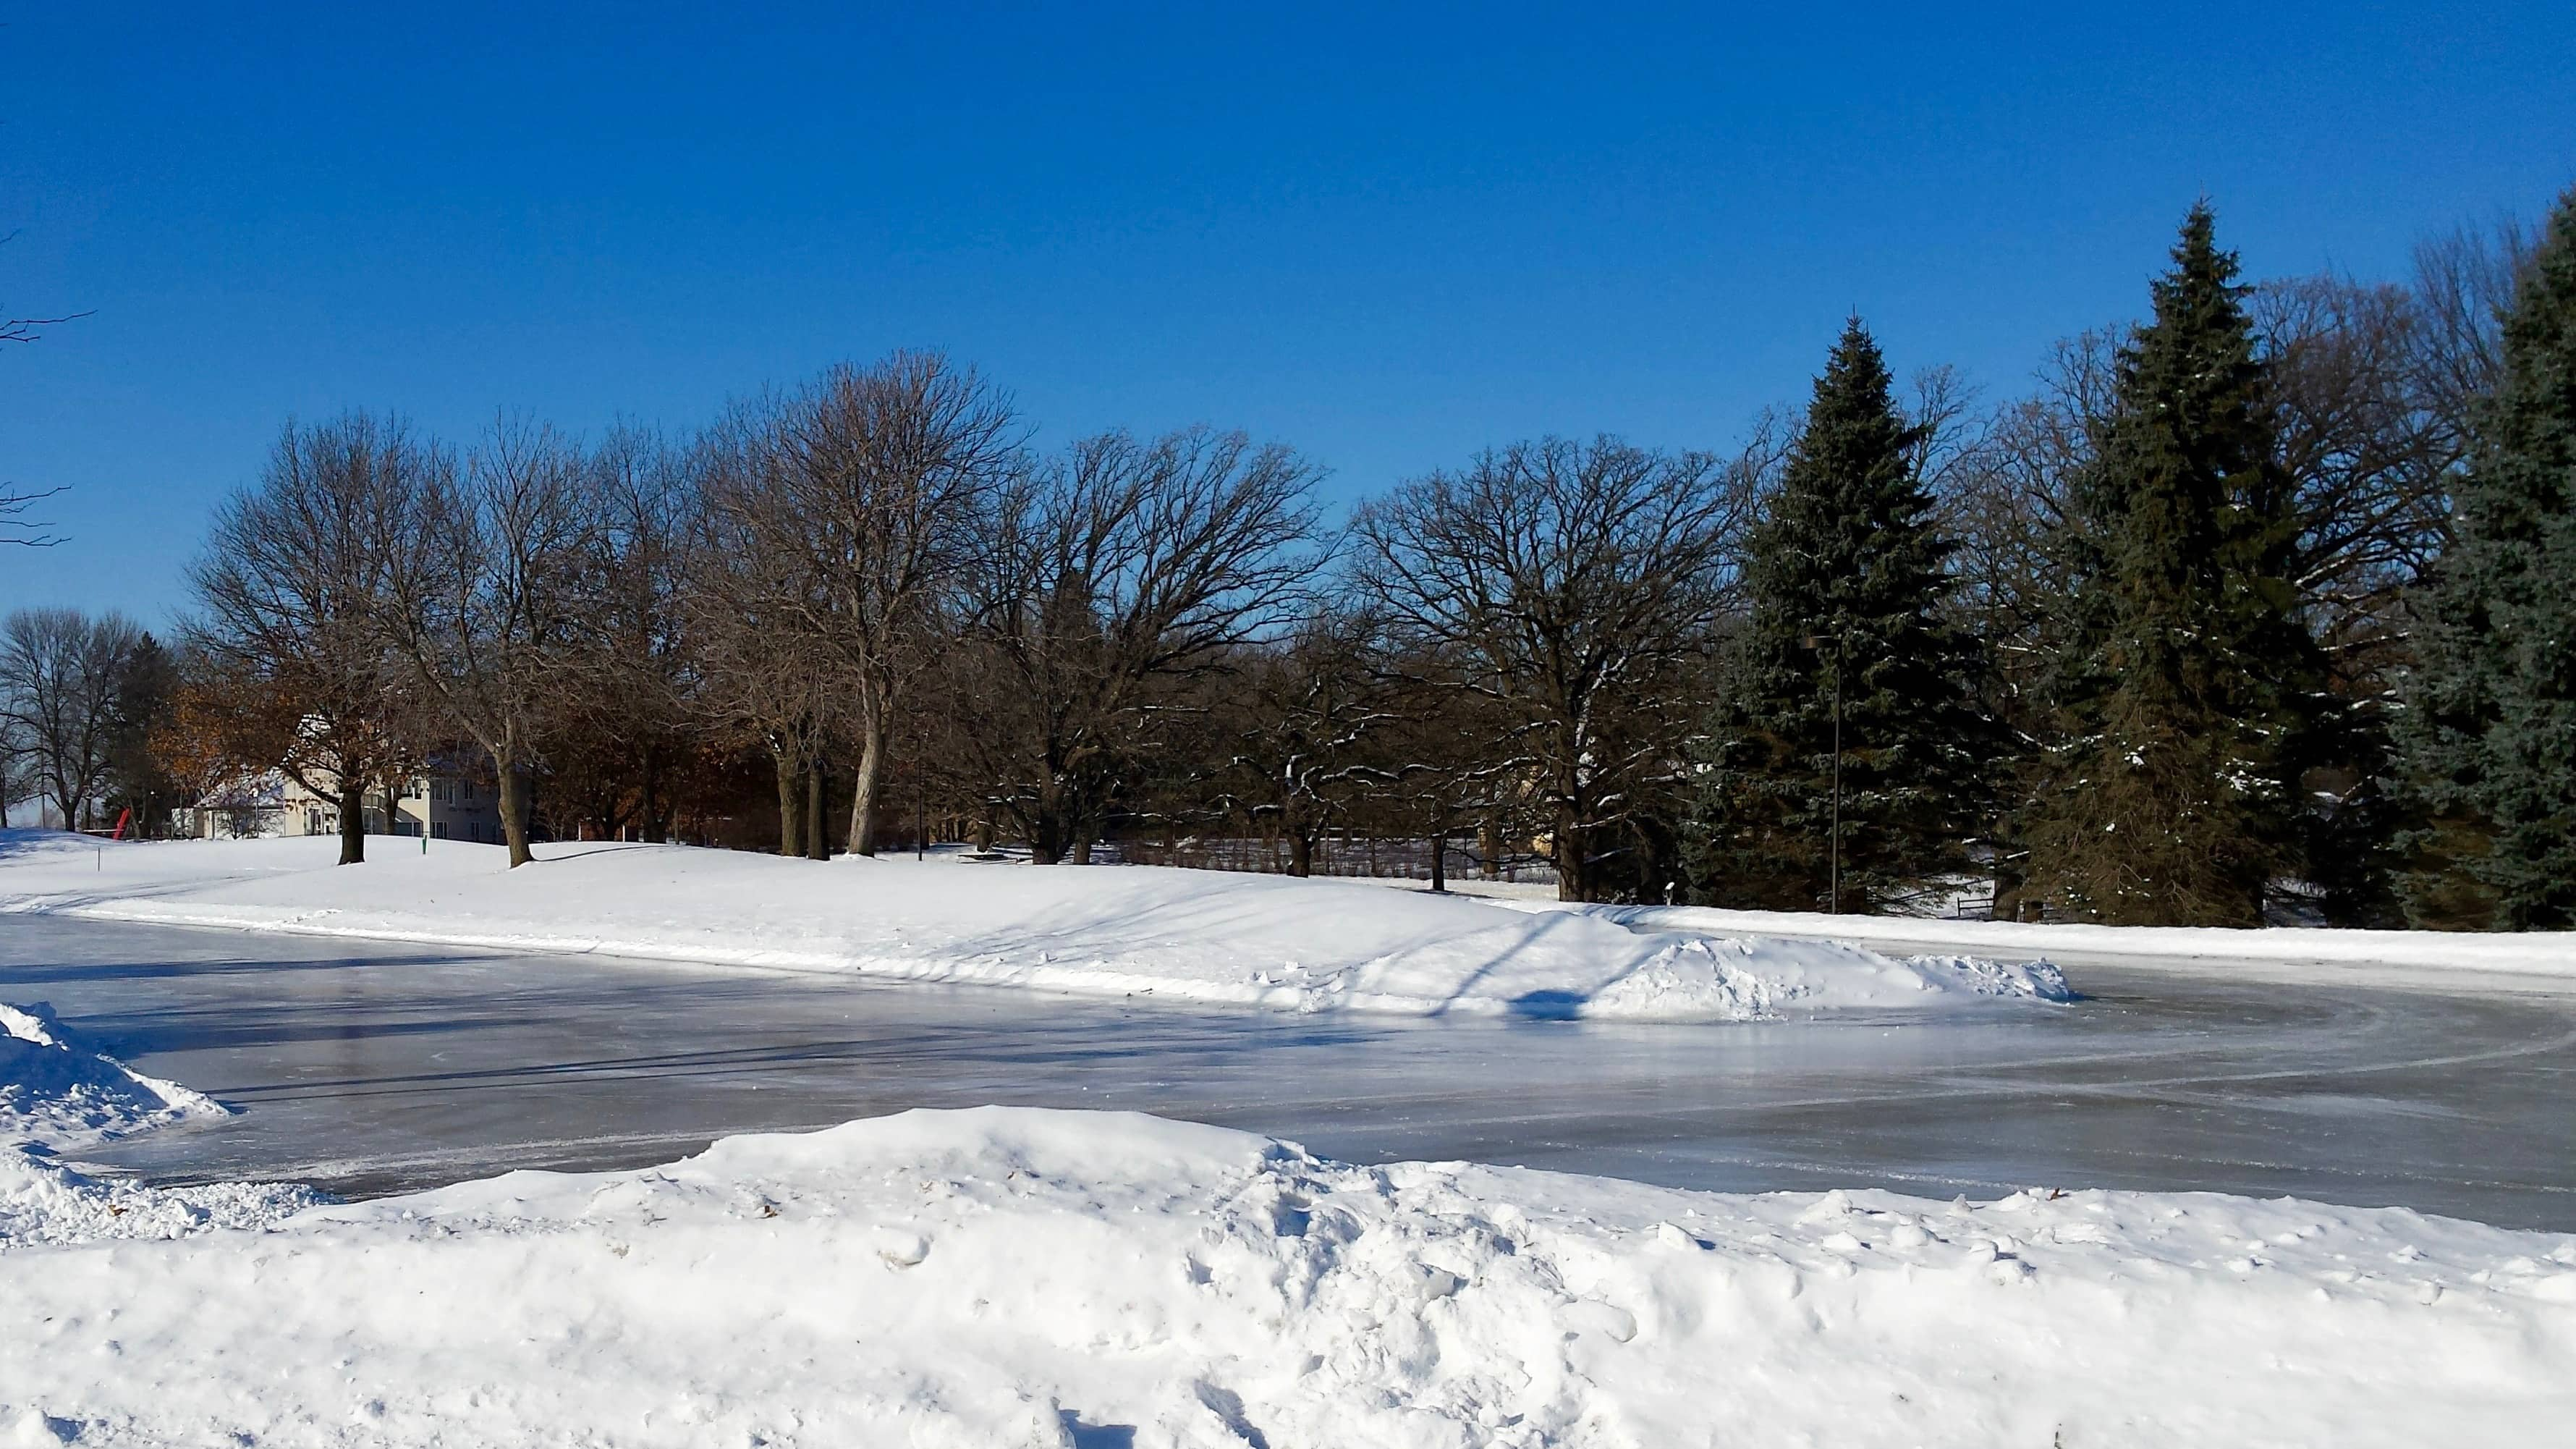 Ice Rink at Staring Lake Park